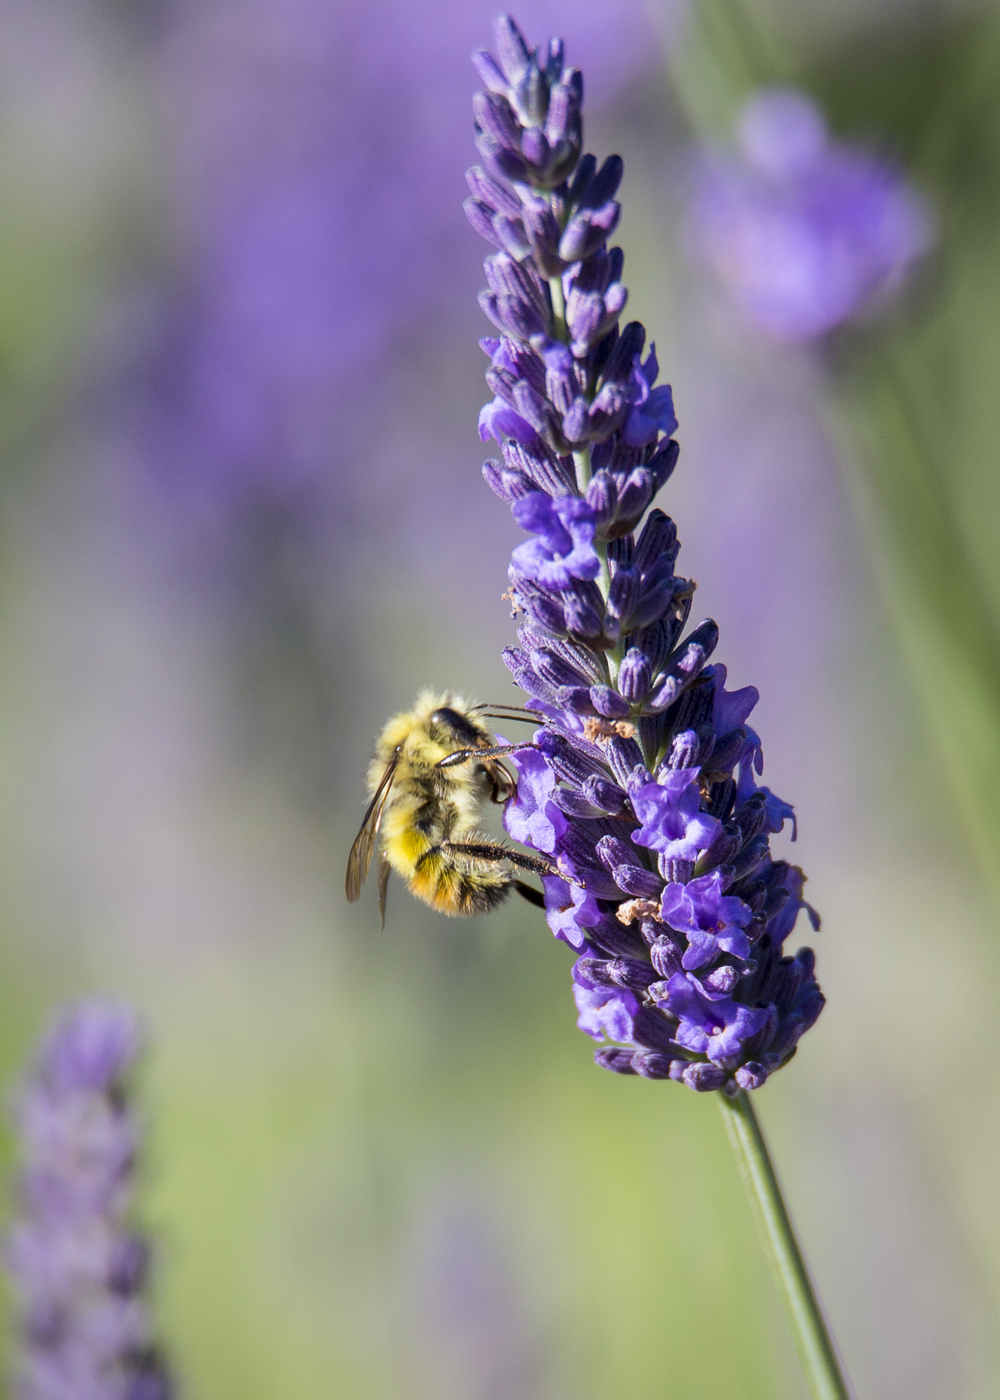 Honeybee on lavender.